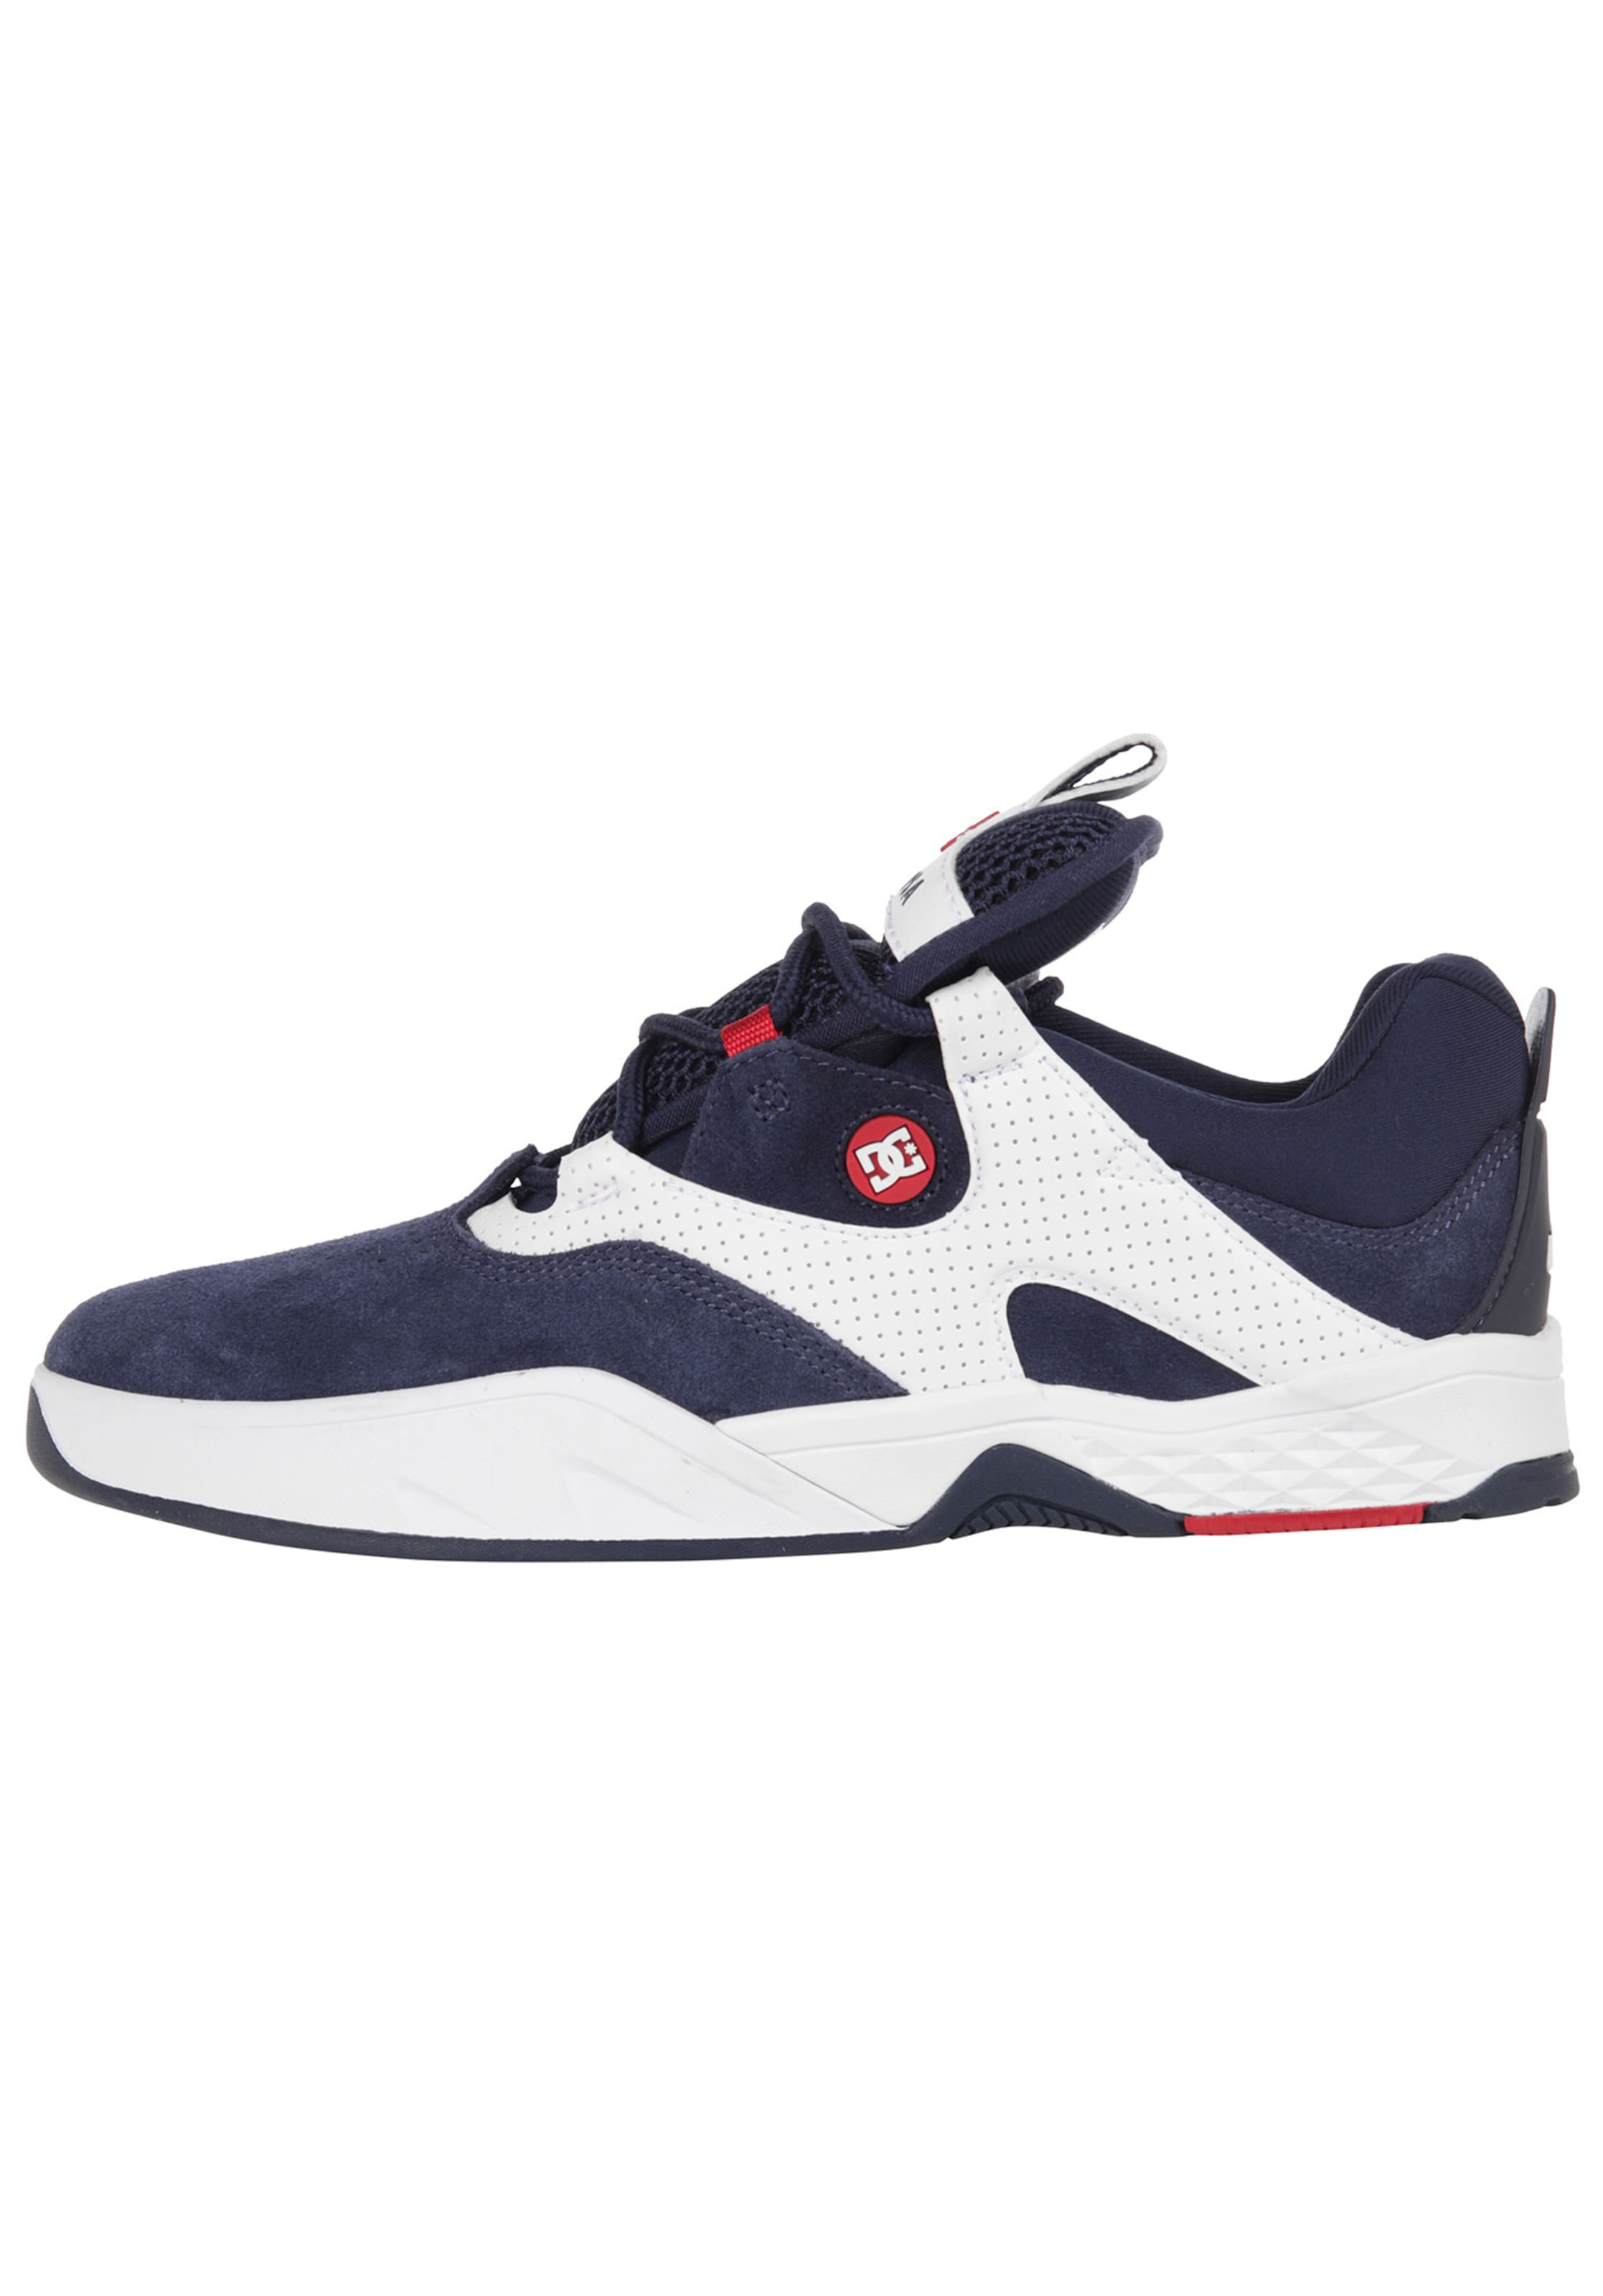 'kalis Sneaker Dc Shoes MarineWeiß S' In n0wkOP